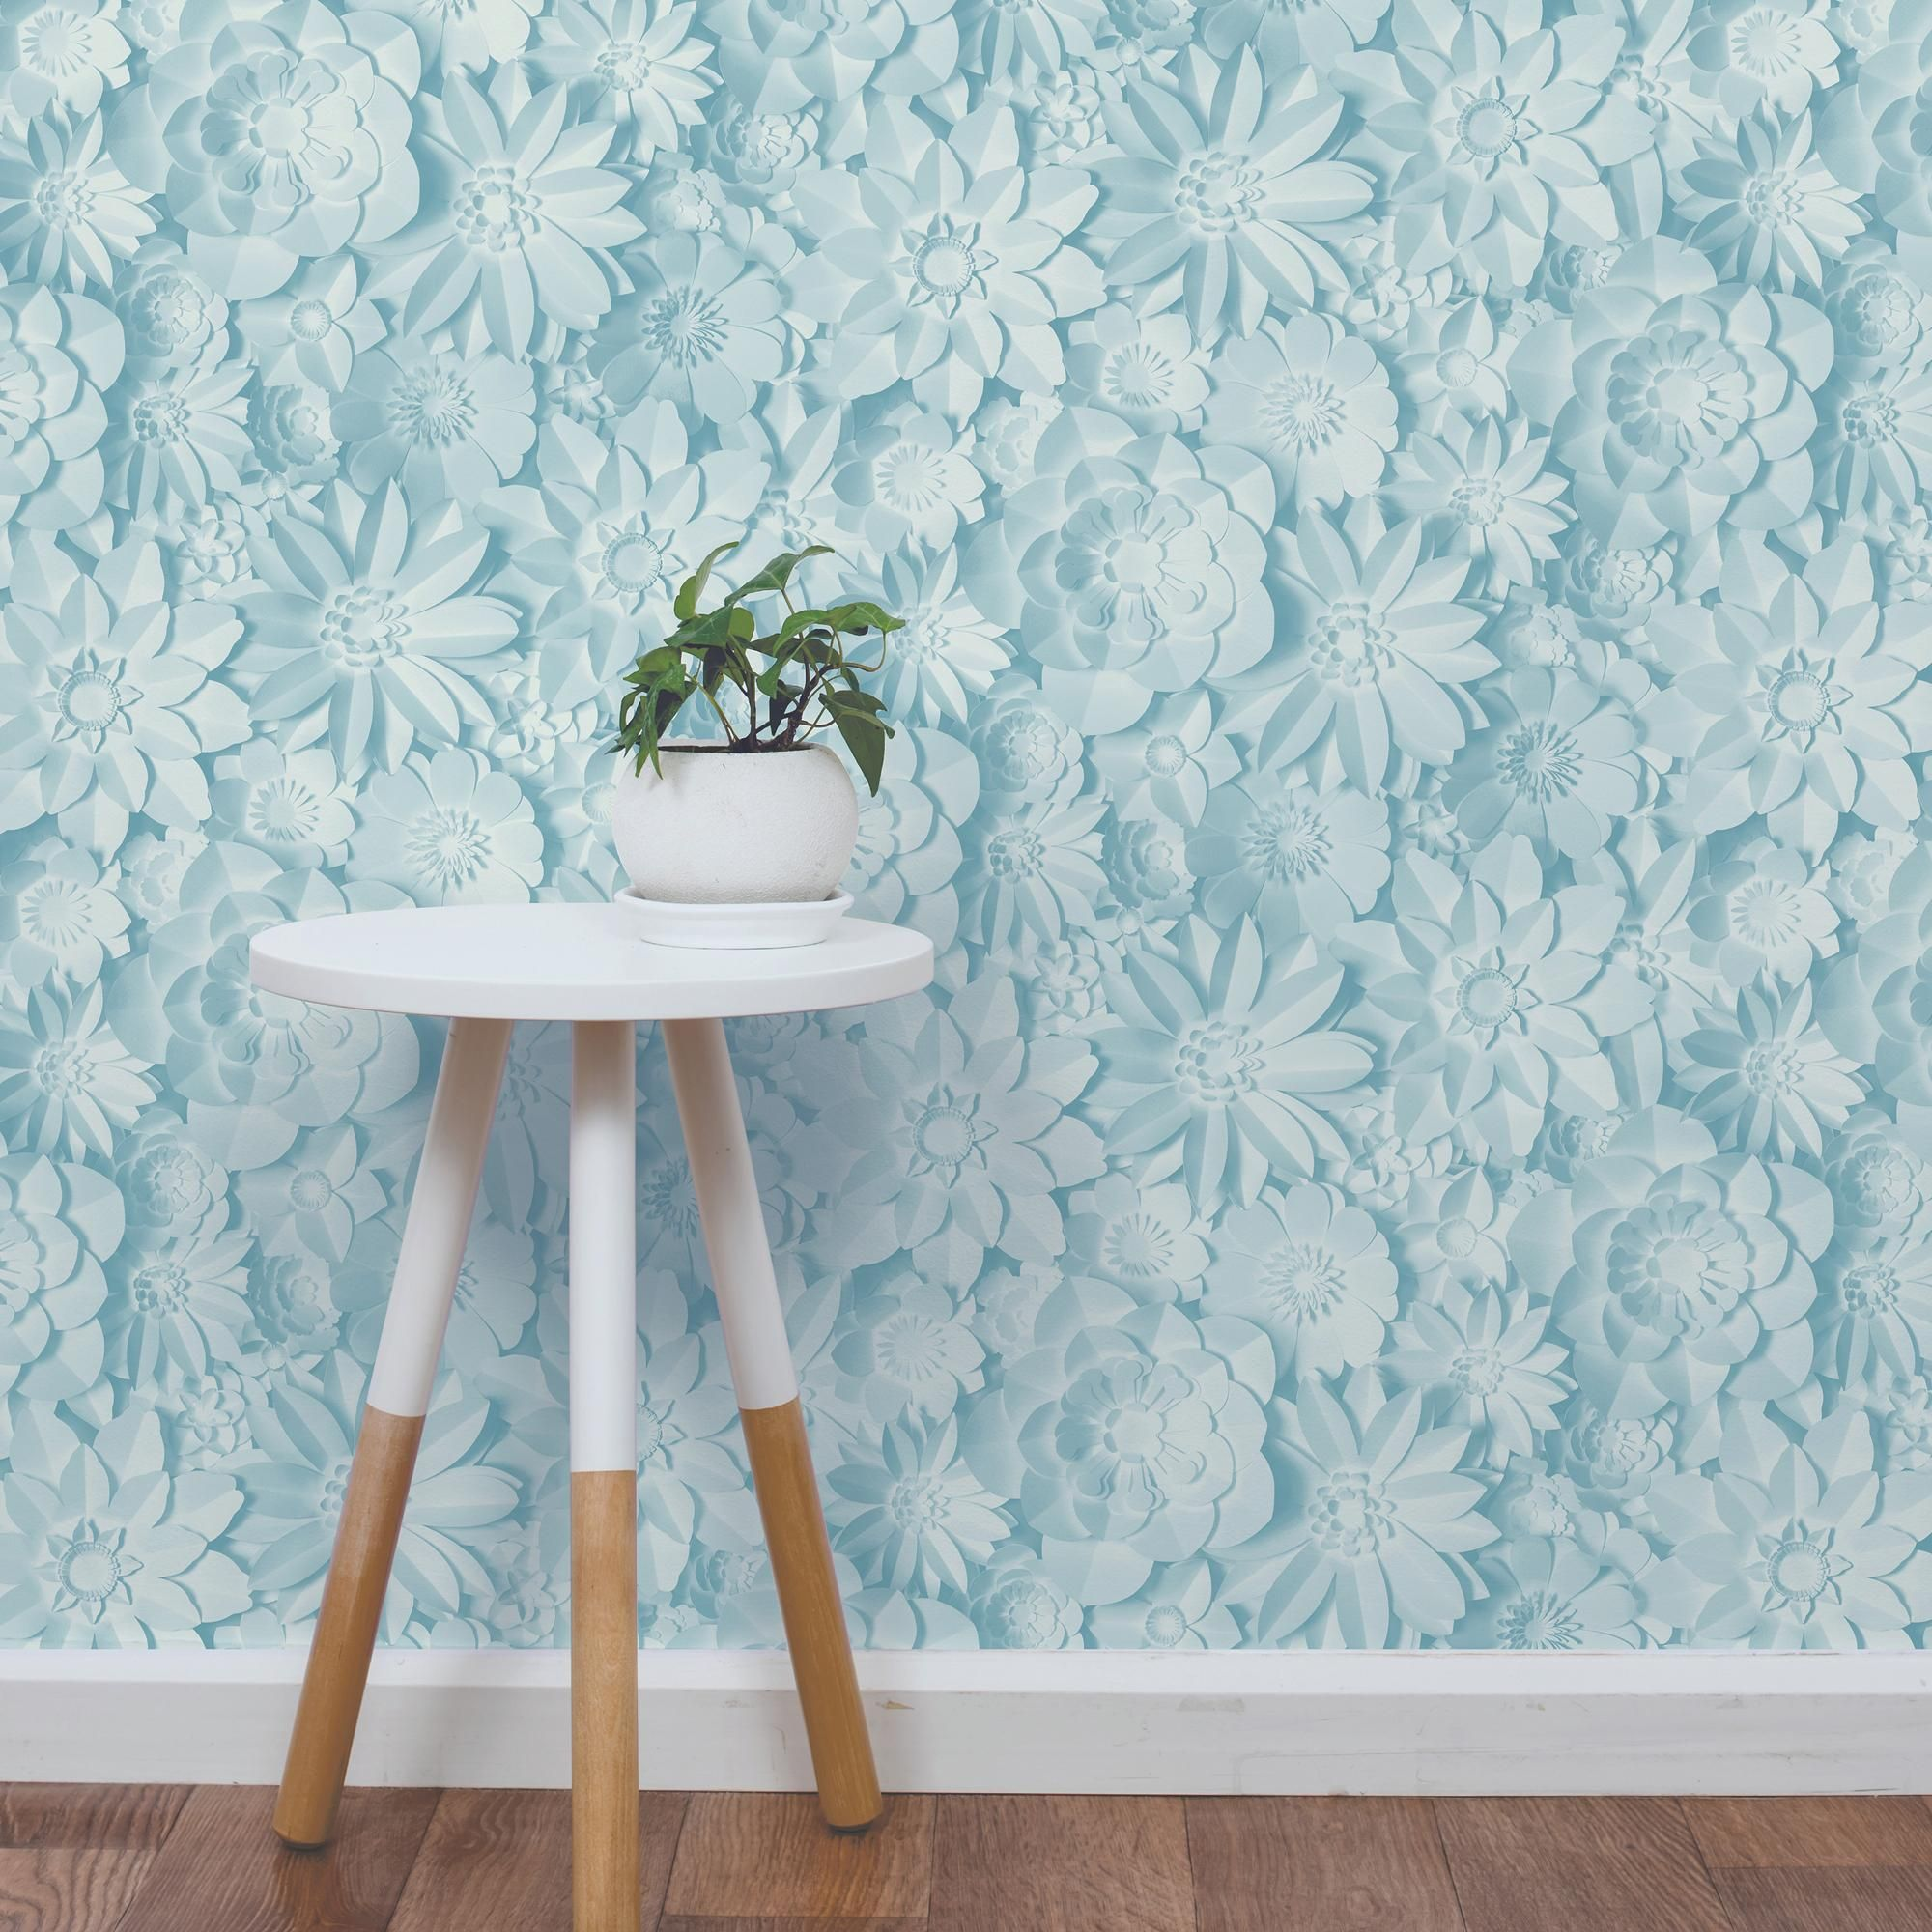 Dimensions Teal Floral 3D Wallpaper in 2020 Teal